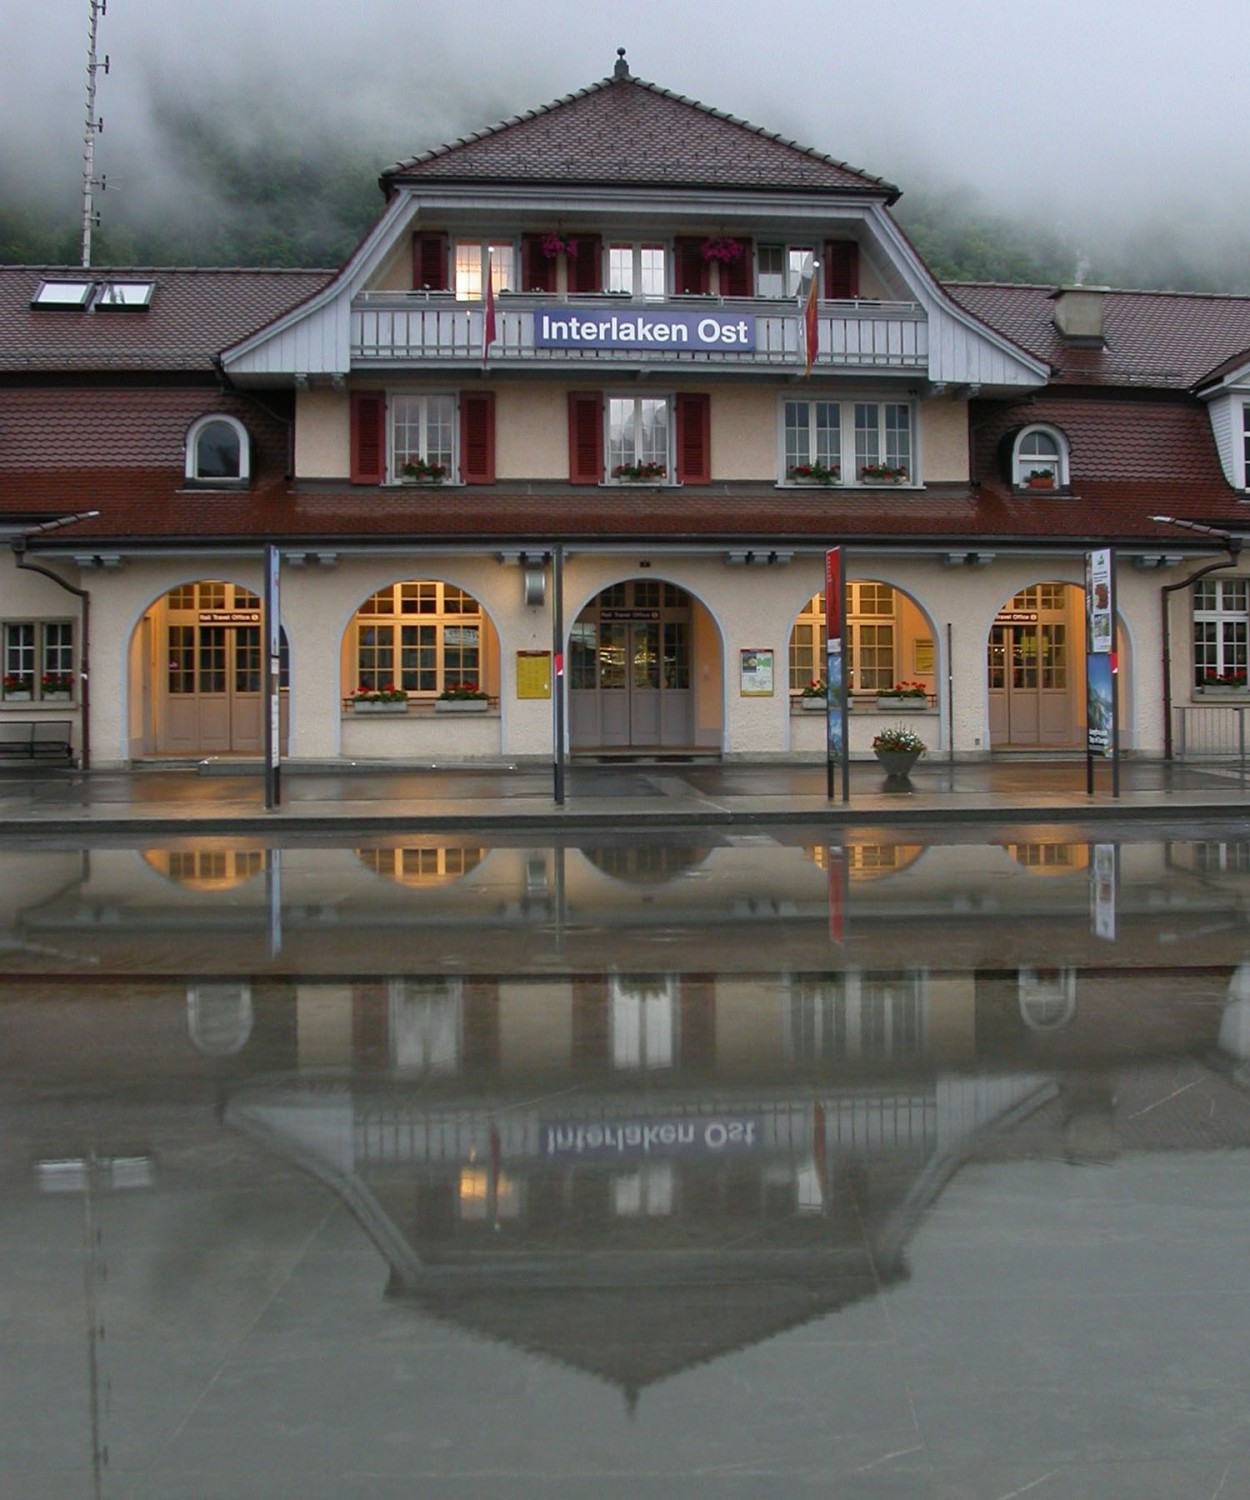 Switzerland-Bernese-Oberland-Interlaken-Ost-Train-Station